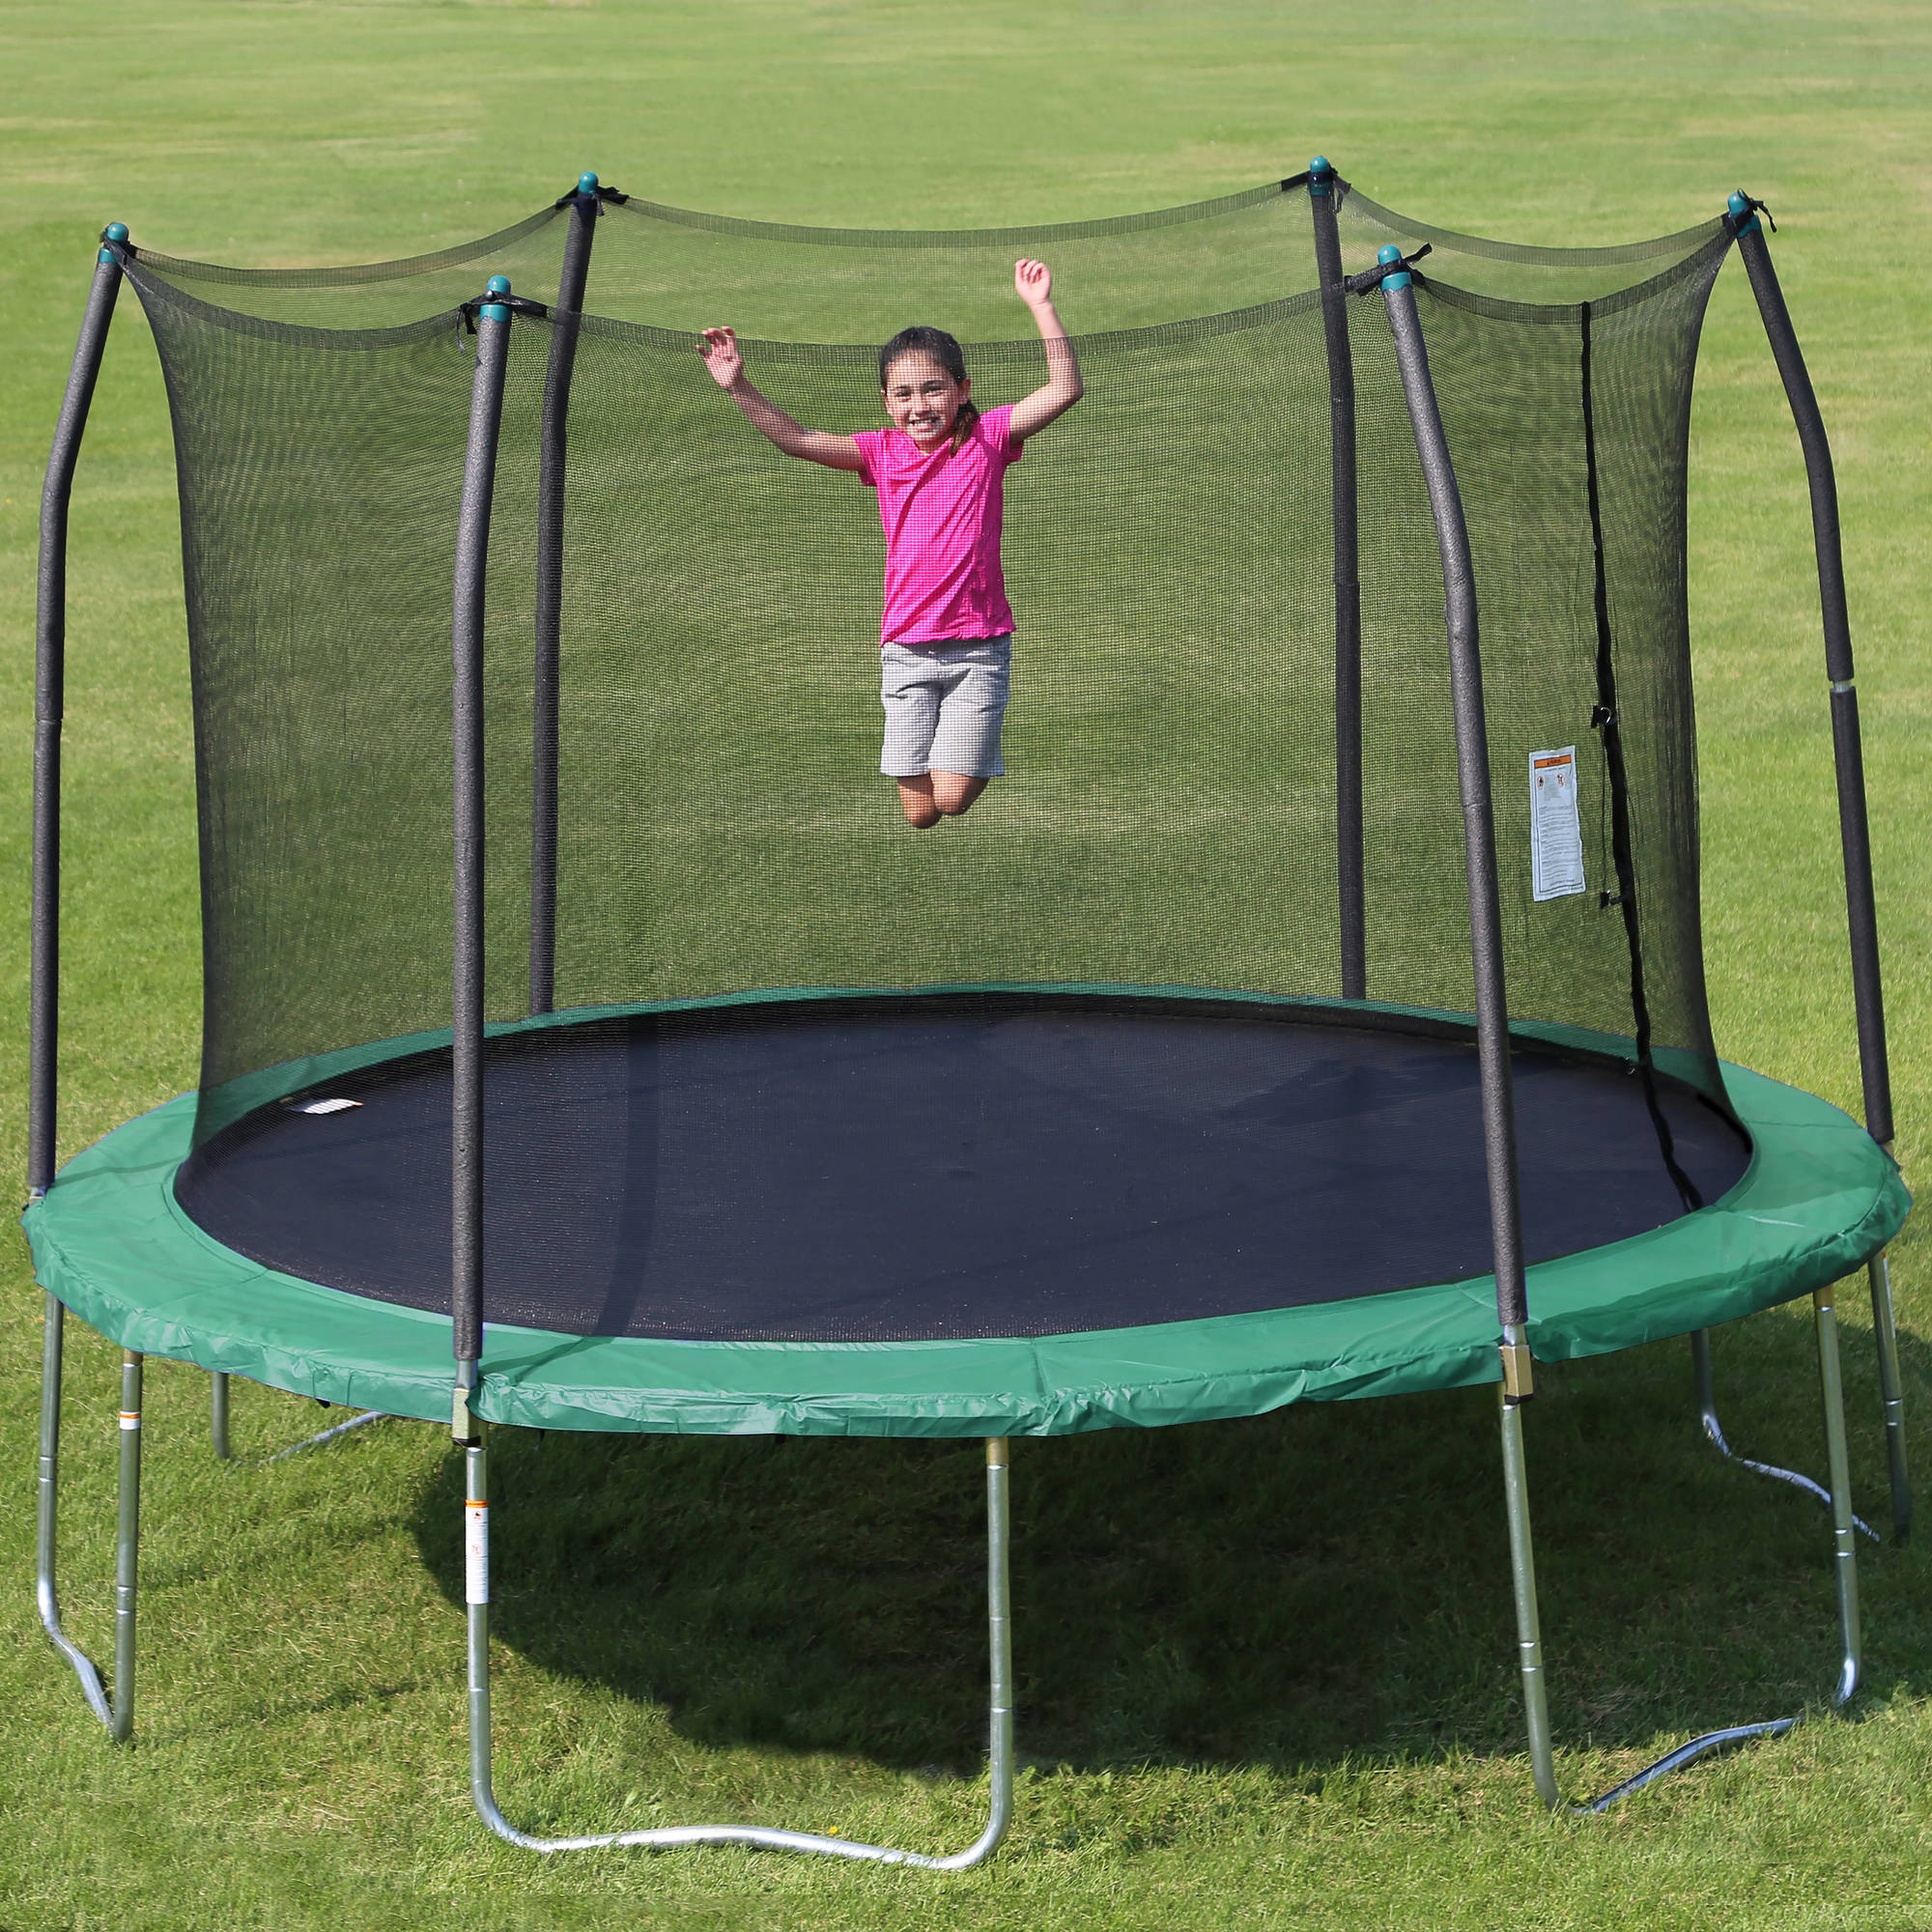 Skywalker Trampolines 12' Round Trampoline and Safety Enclosure